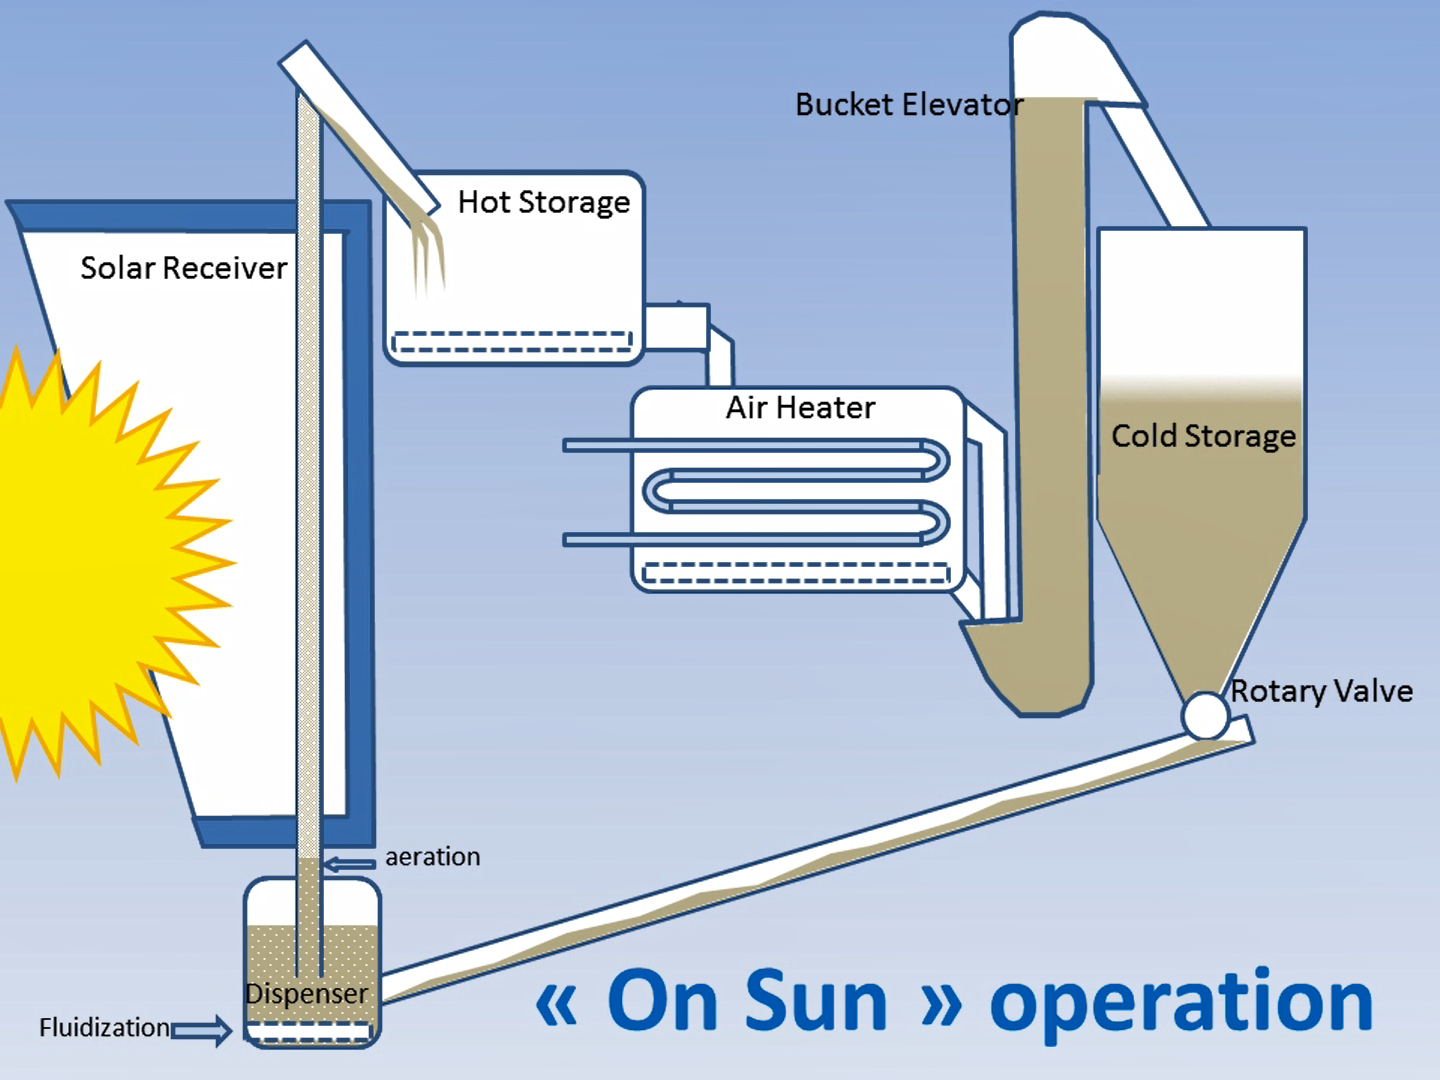 thermal power plant full diagram animated video of the principles of the next-csp solar ...